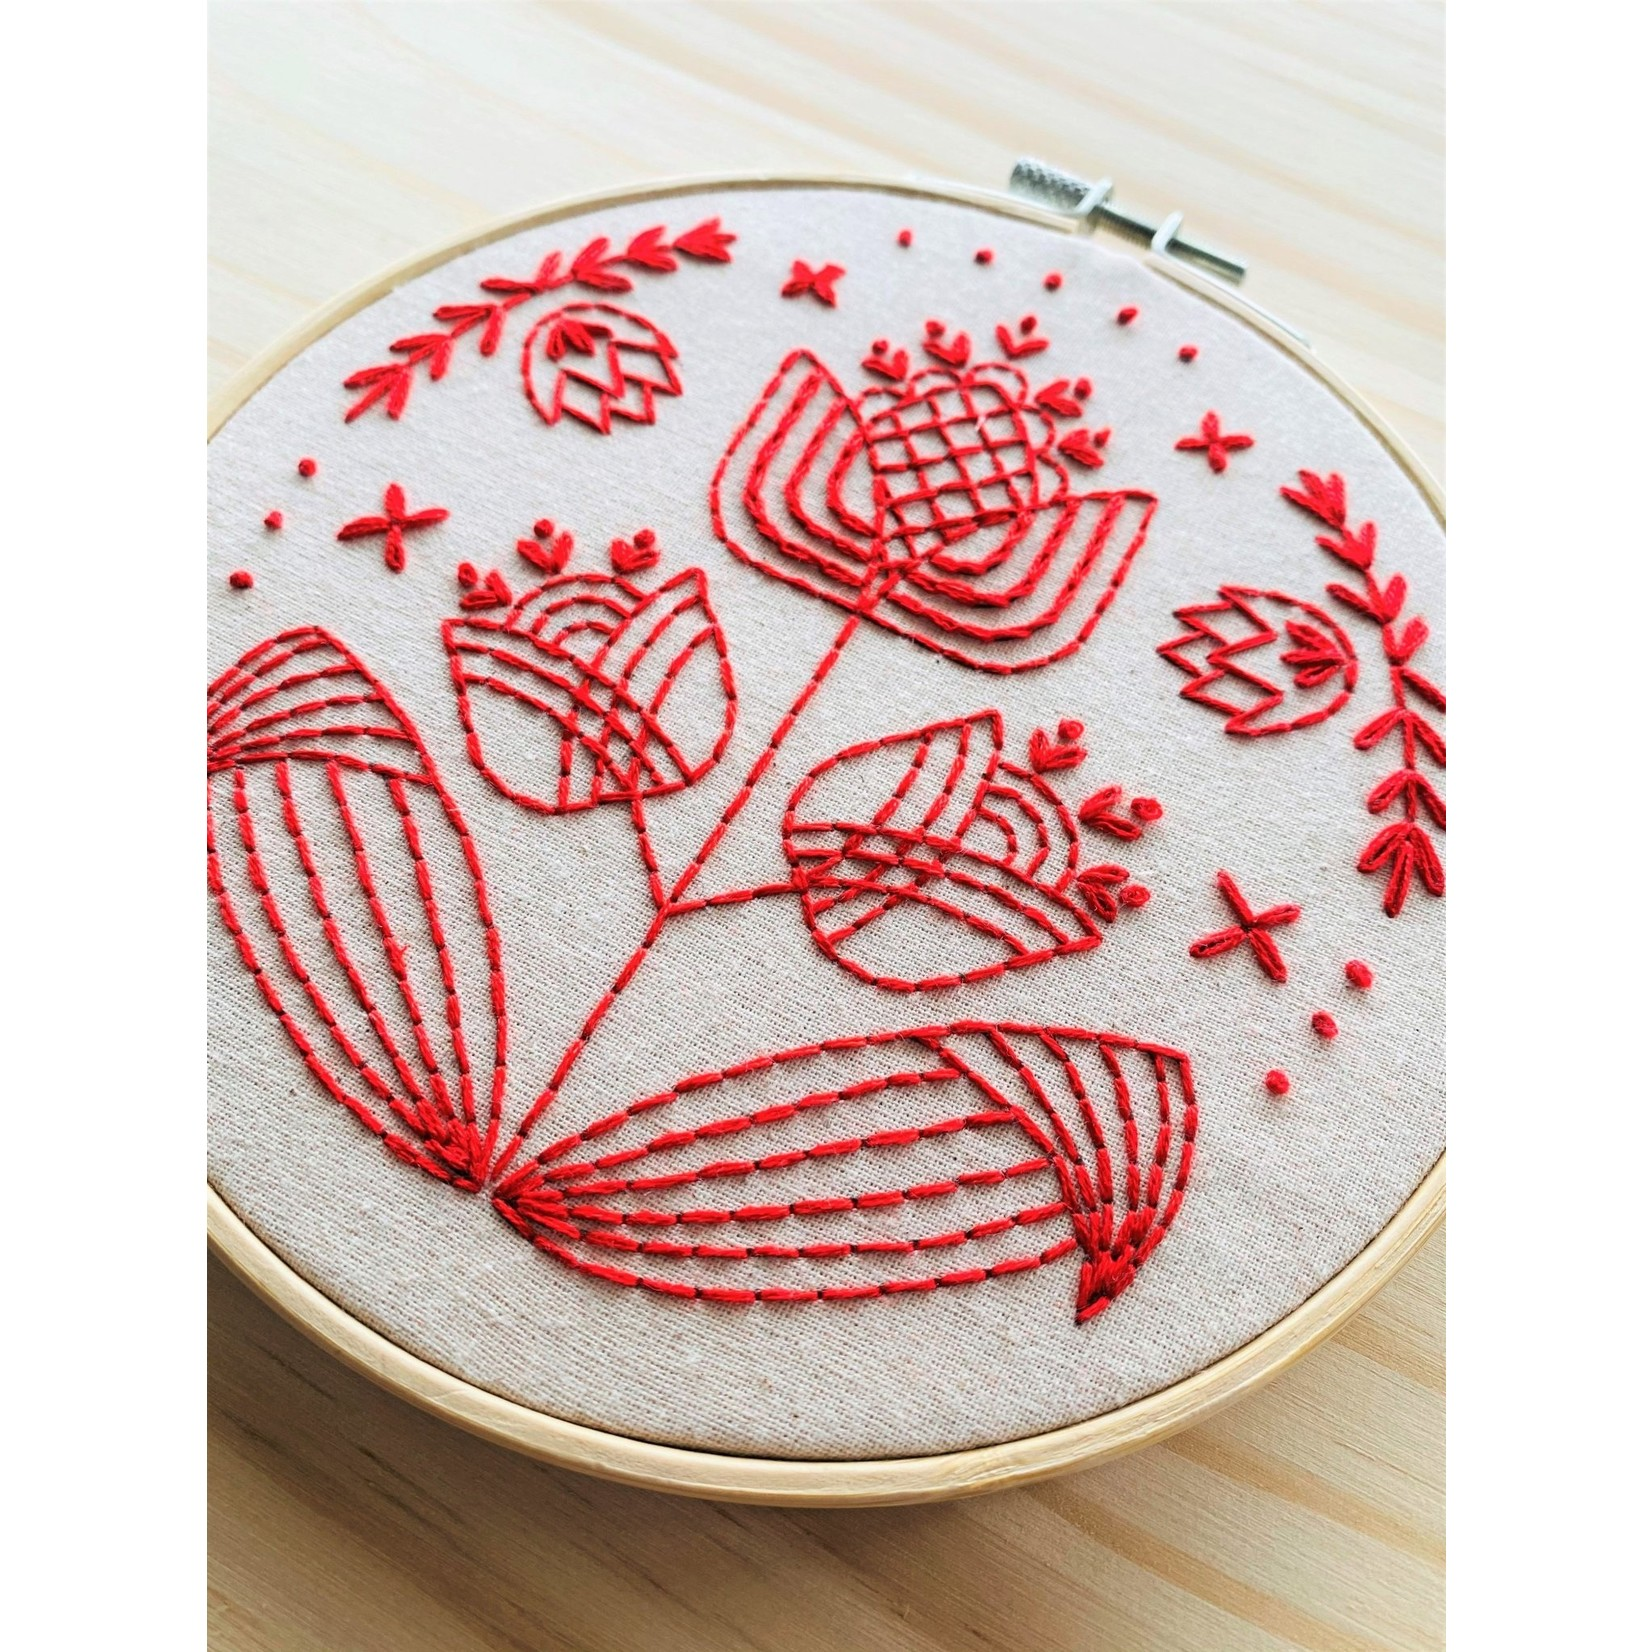 Hook Line and Tinker Tulips in Symmetry Complete Embroidery Kit